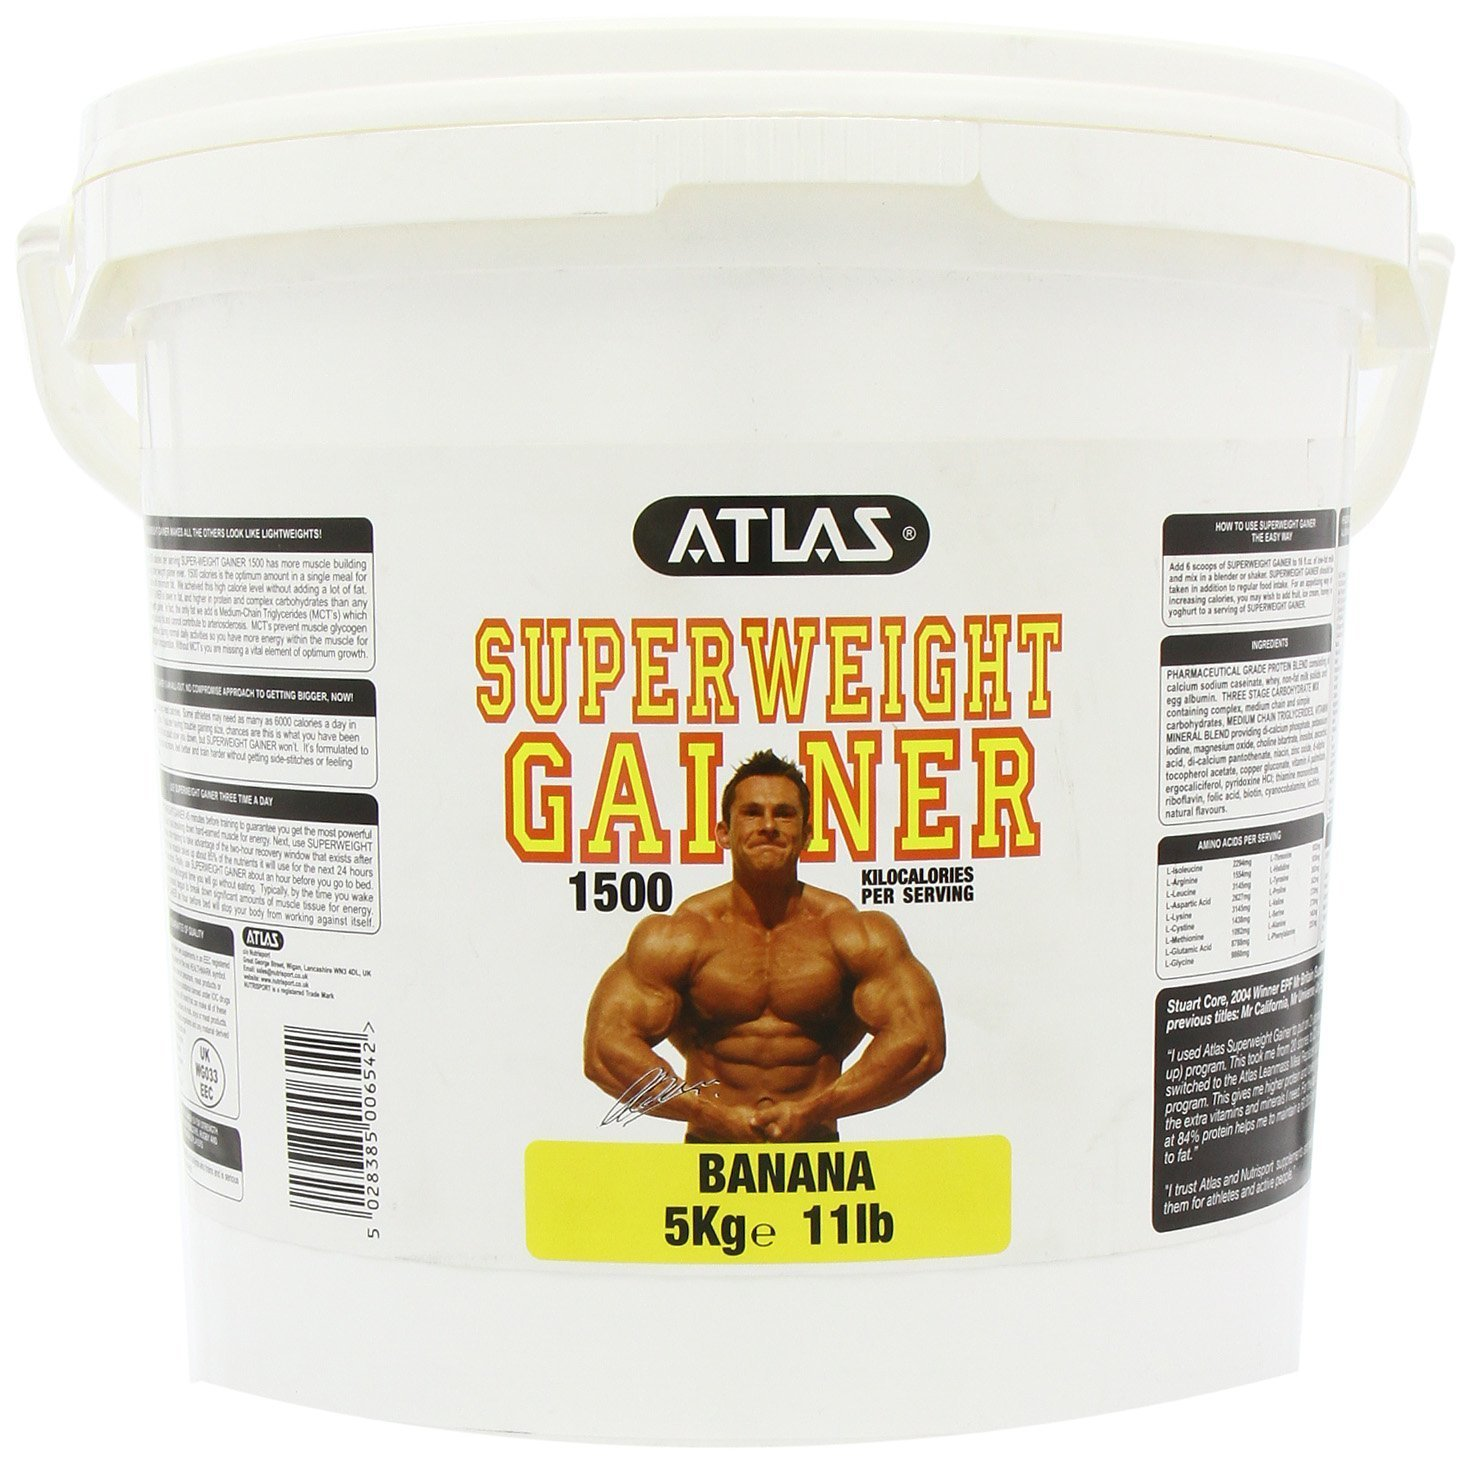 71iW8p7Kf1L - Atlas Super Weight Gainer 5kg is lower in fat, and higher in protein and complex carbohydrate than any other leading…